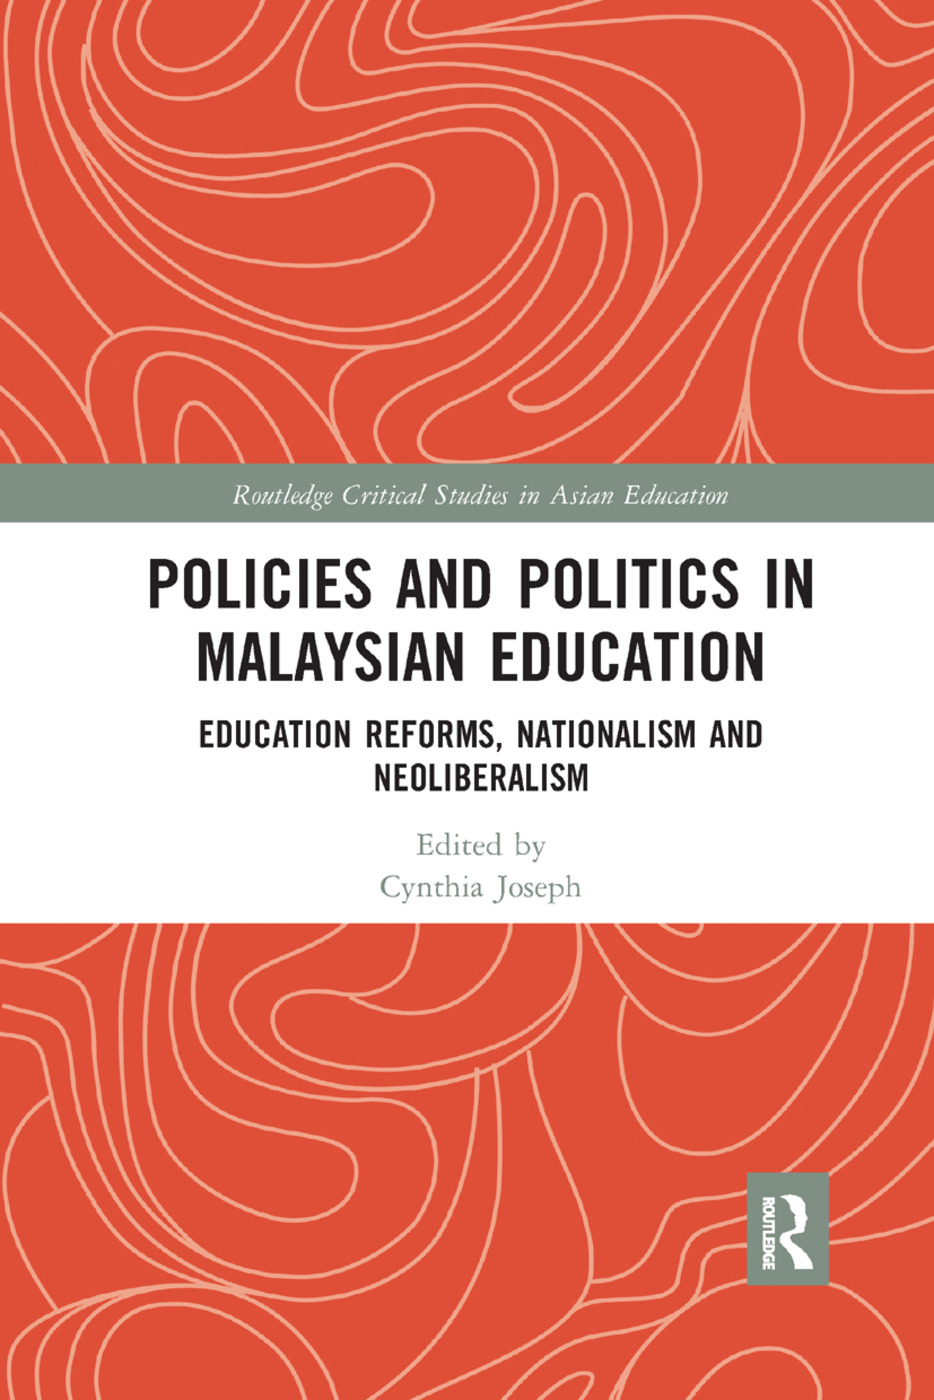 Policies and Politics in Malaysian Education: Education Reforms, Nationalism and Neoliberalism book cover